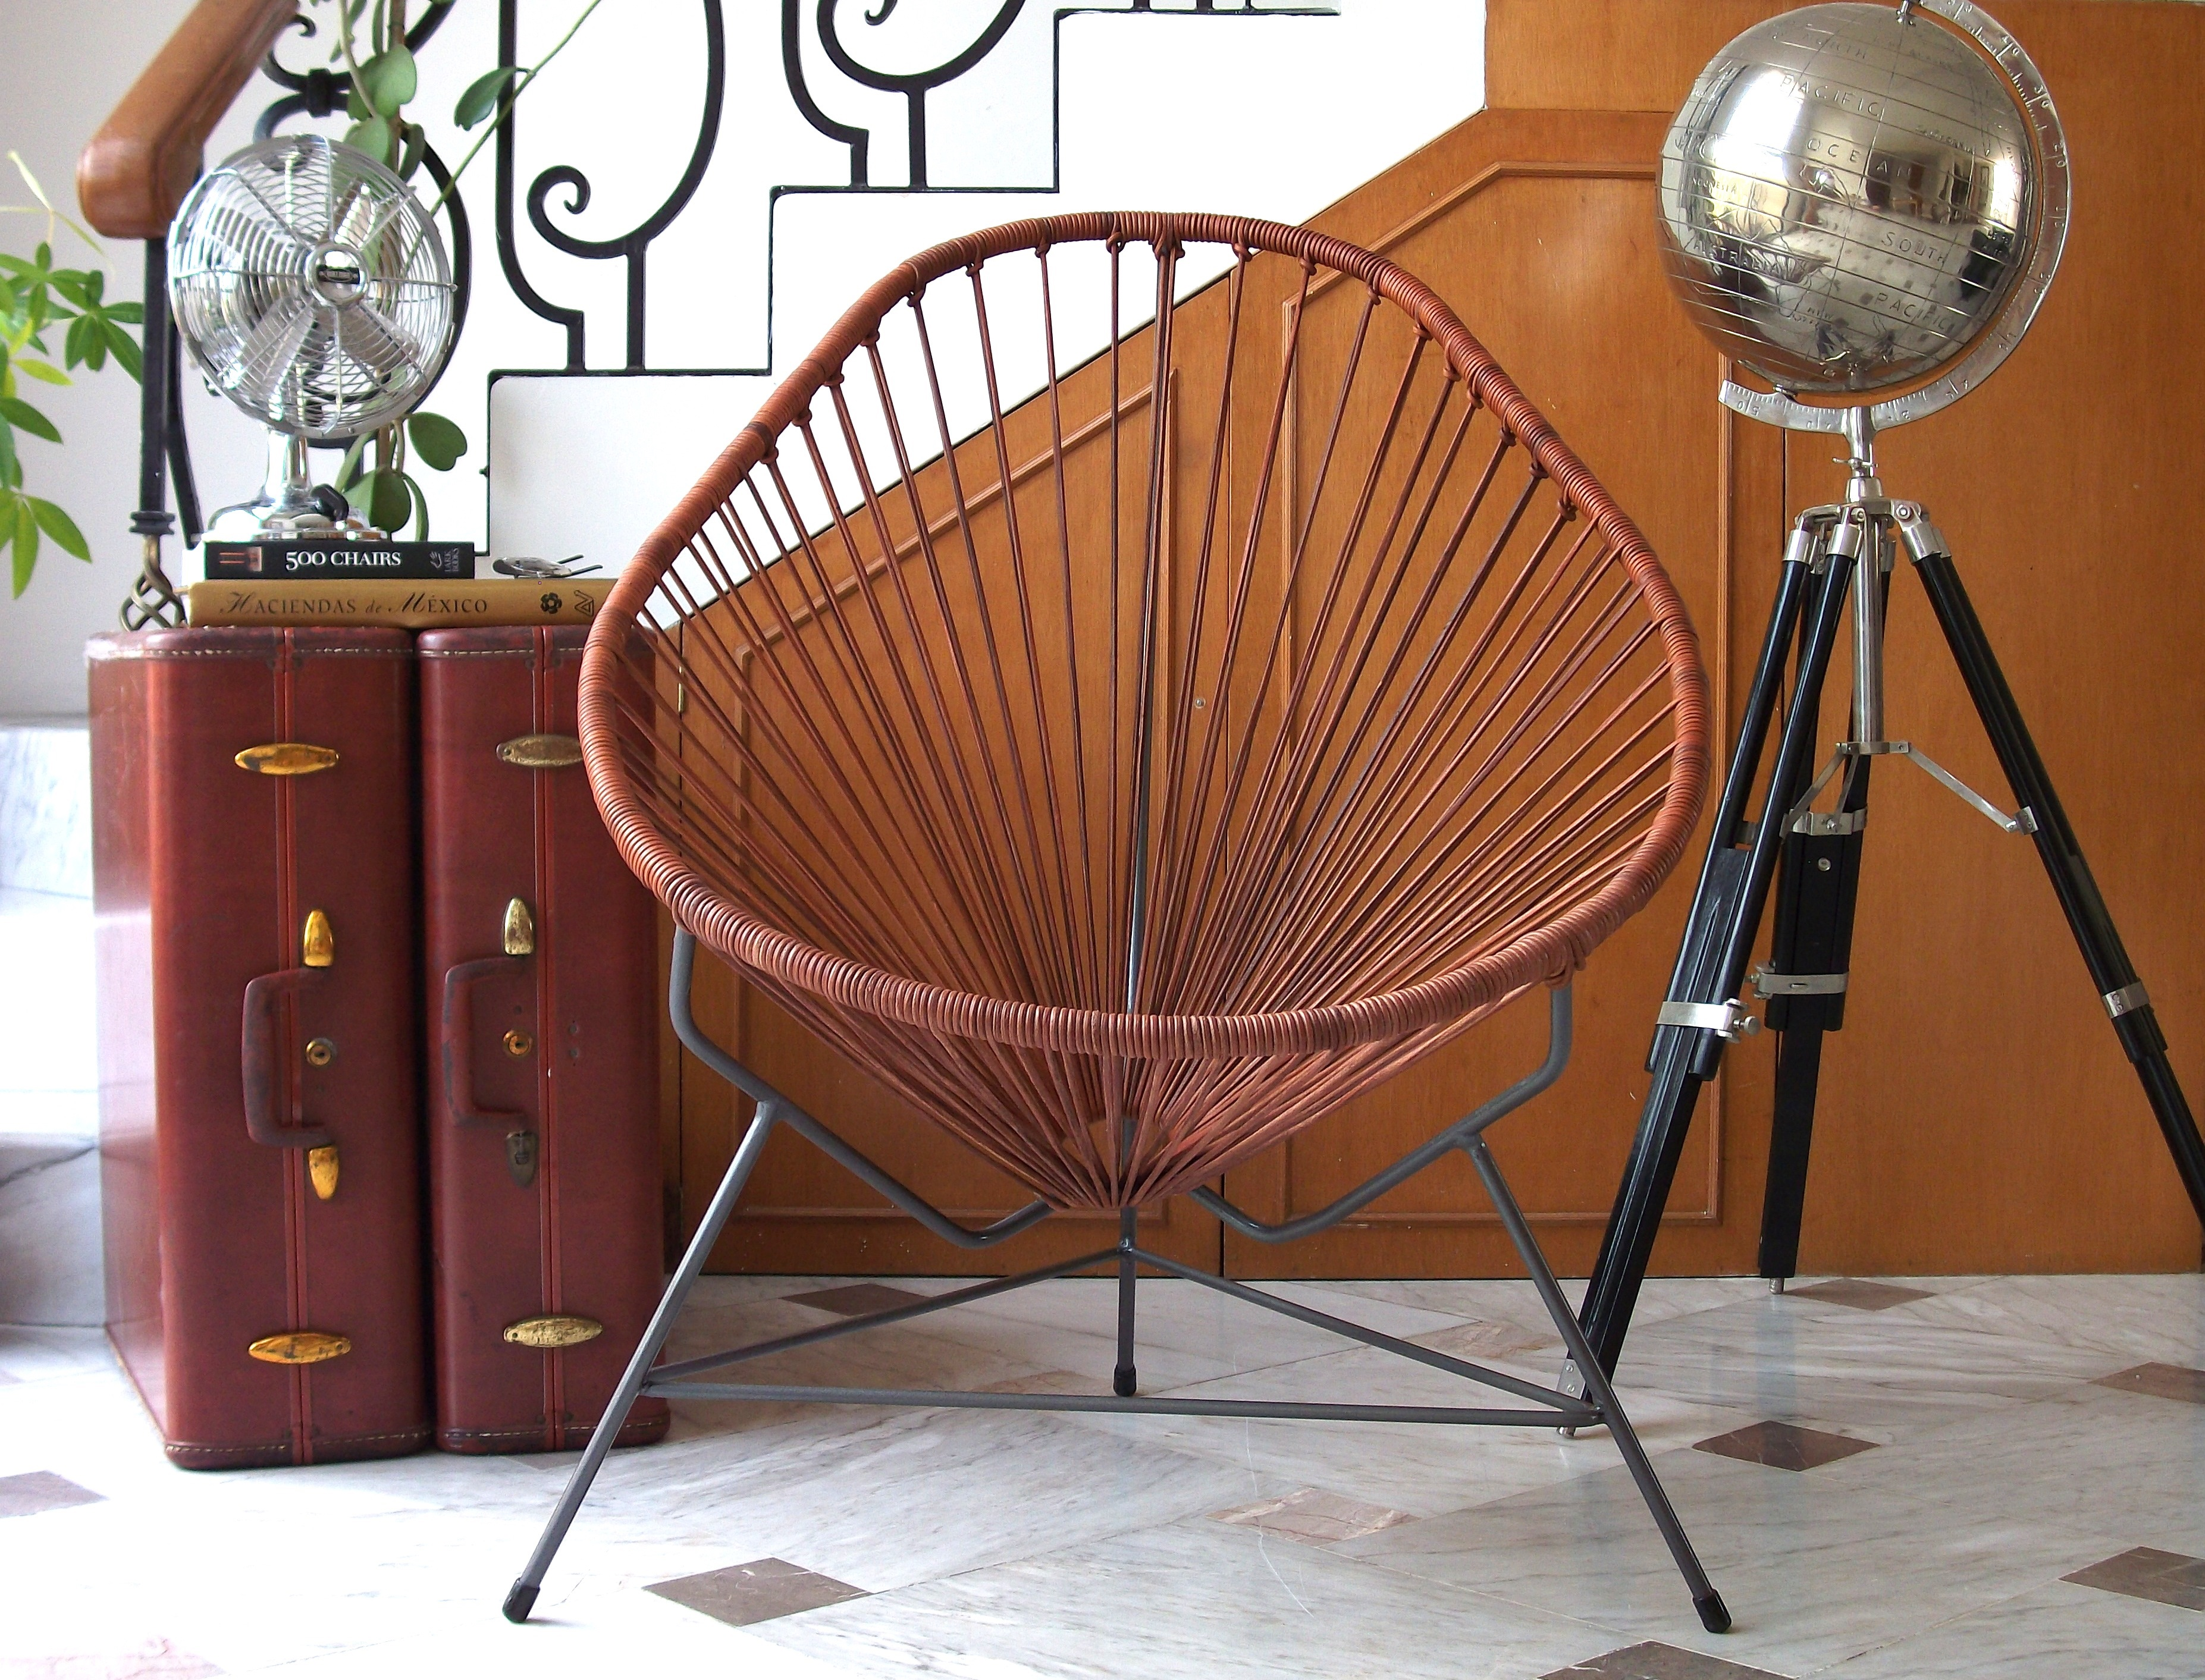 acapulco chair west elm outdoor rocking the debate between original and replica chairs